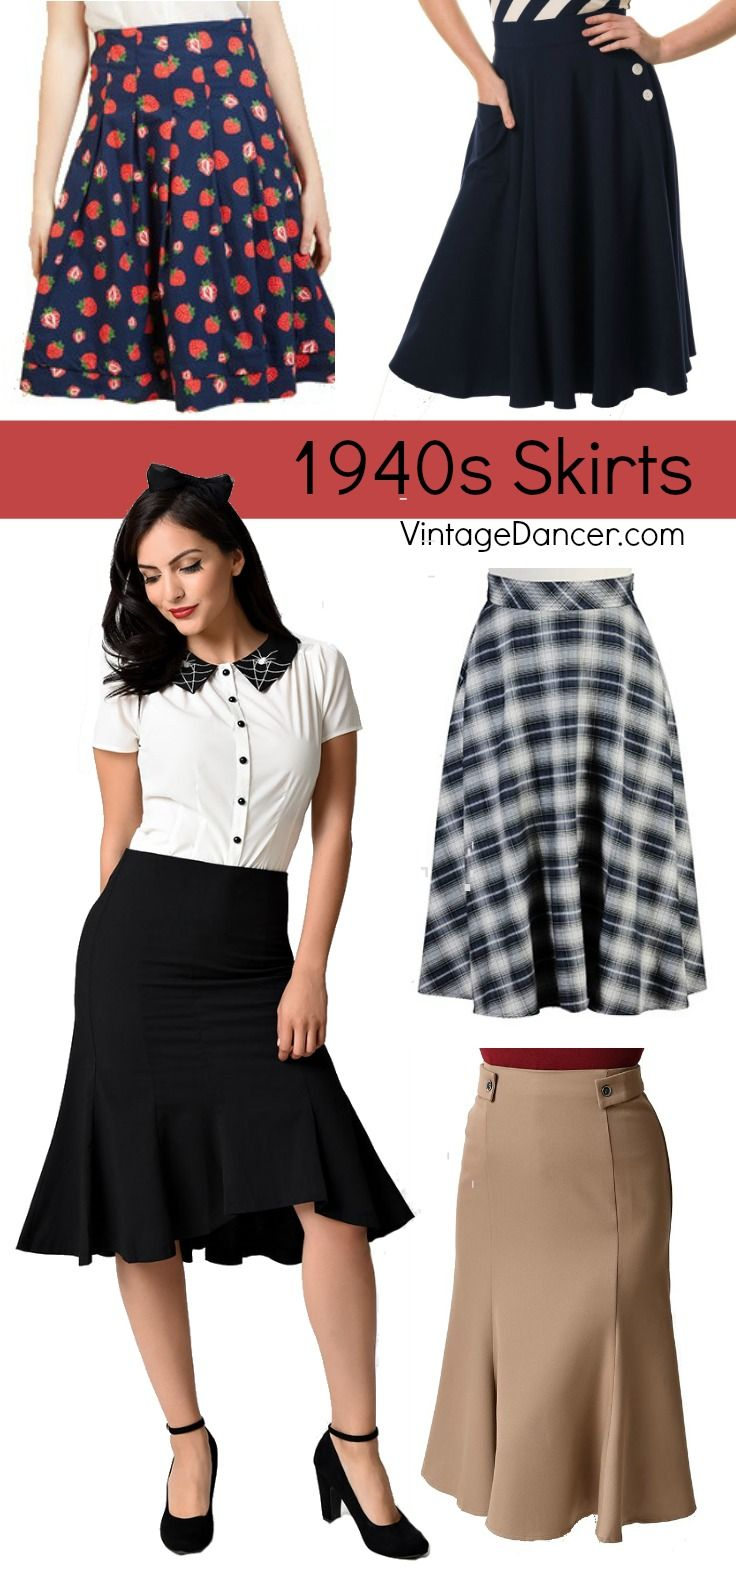 Women s 1940s style skirts. High waist, A-line, plaid, polka dot, novelty  prints at VintageDancer.com 1940s 66817c5f35